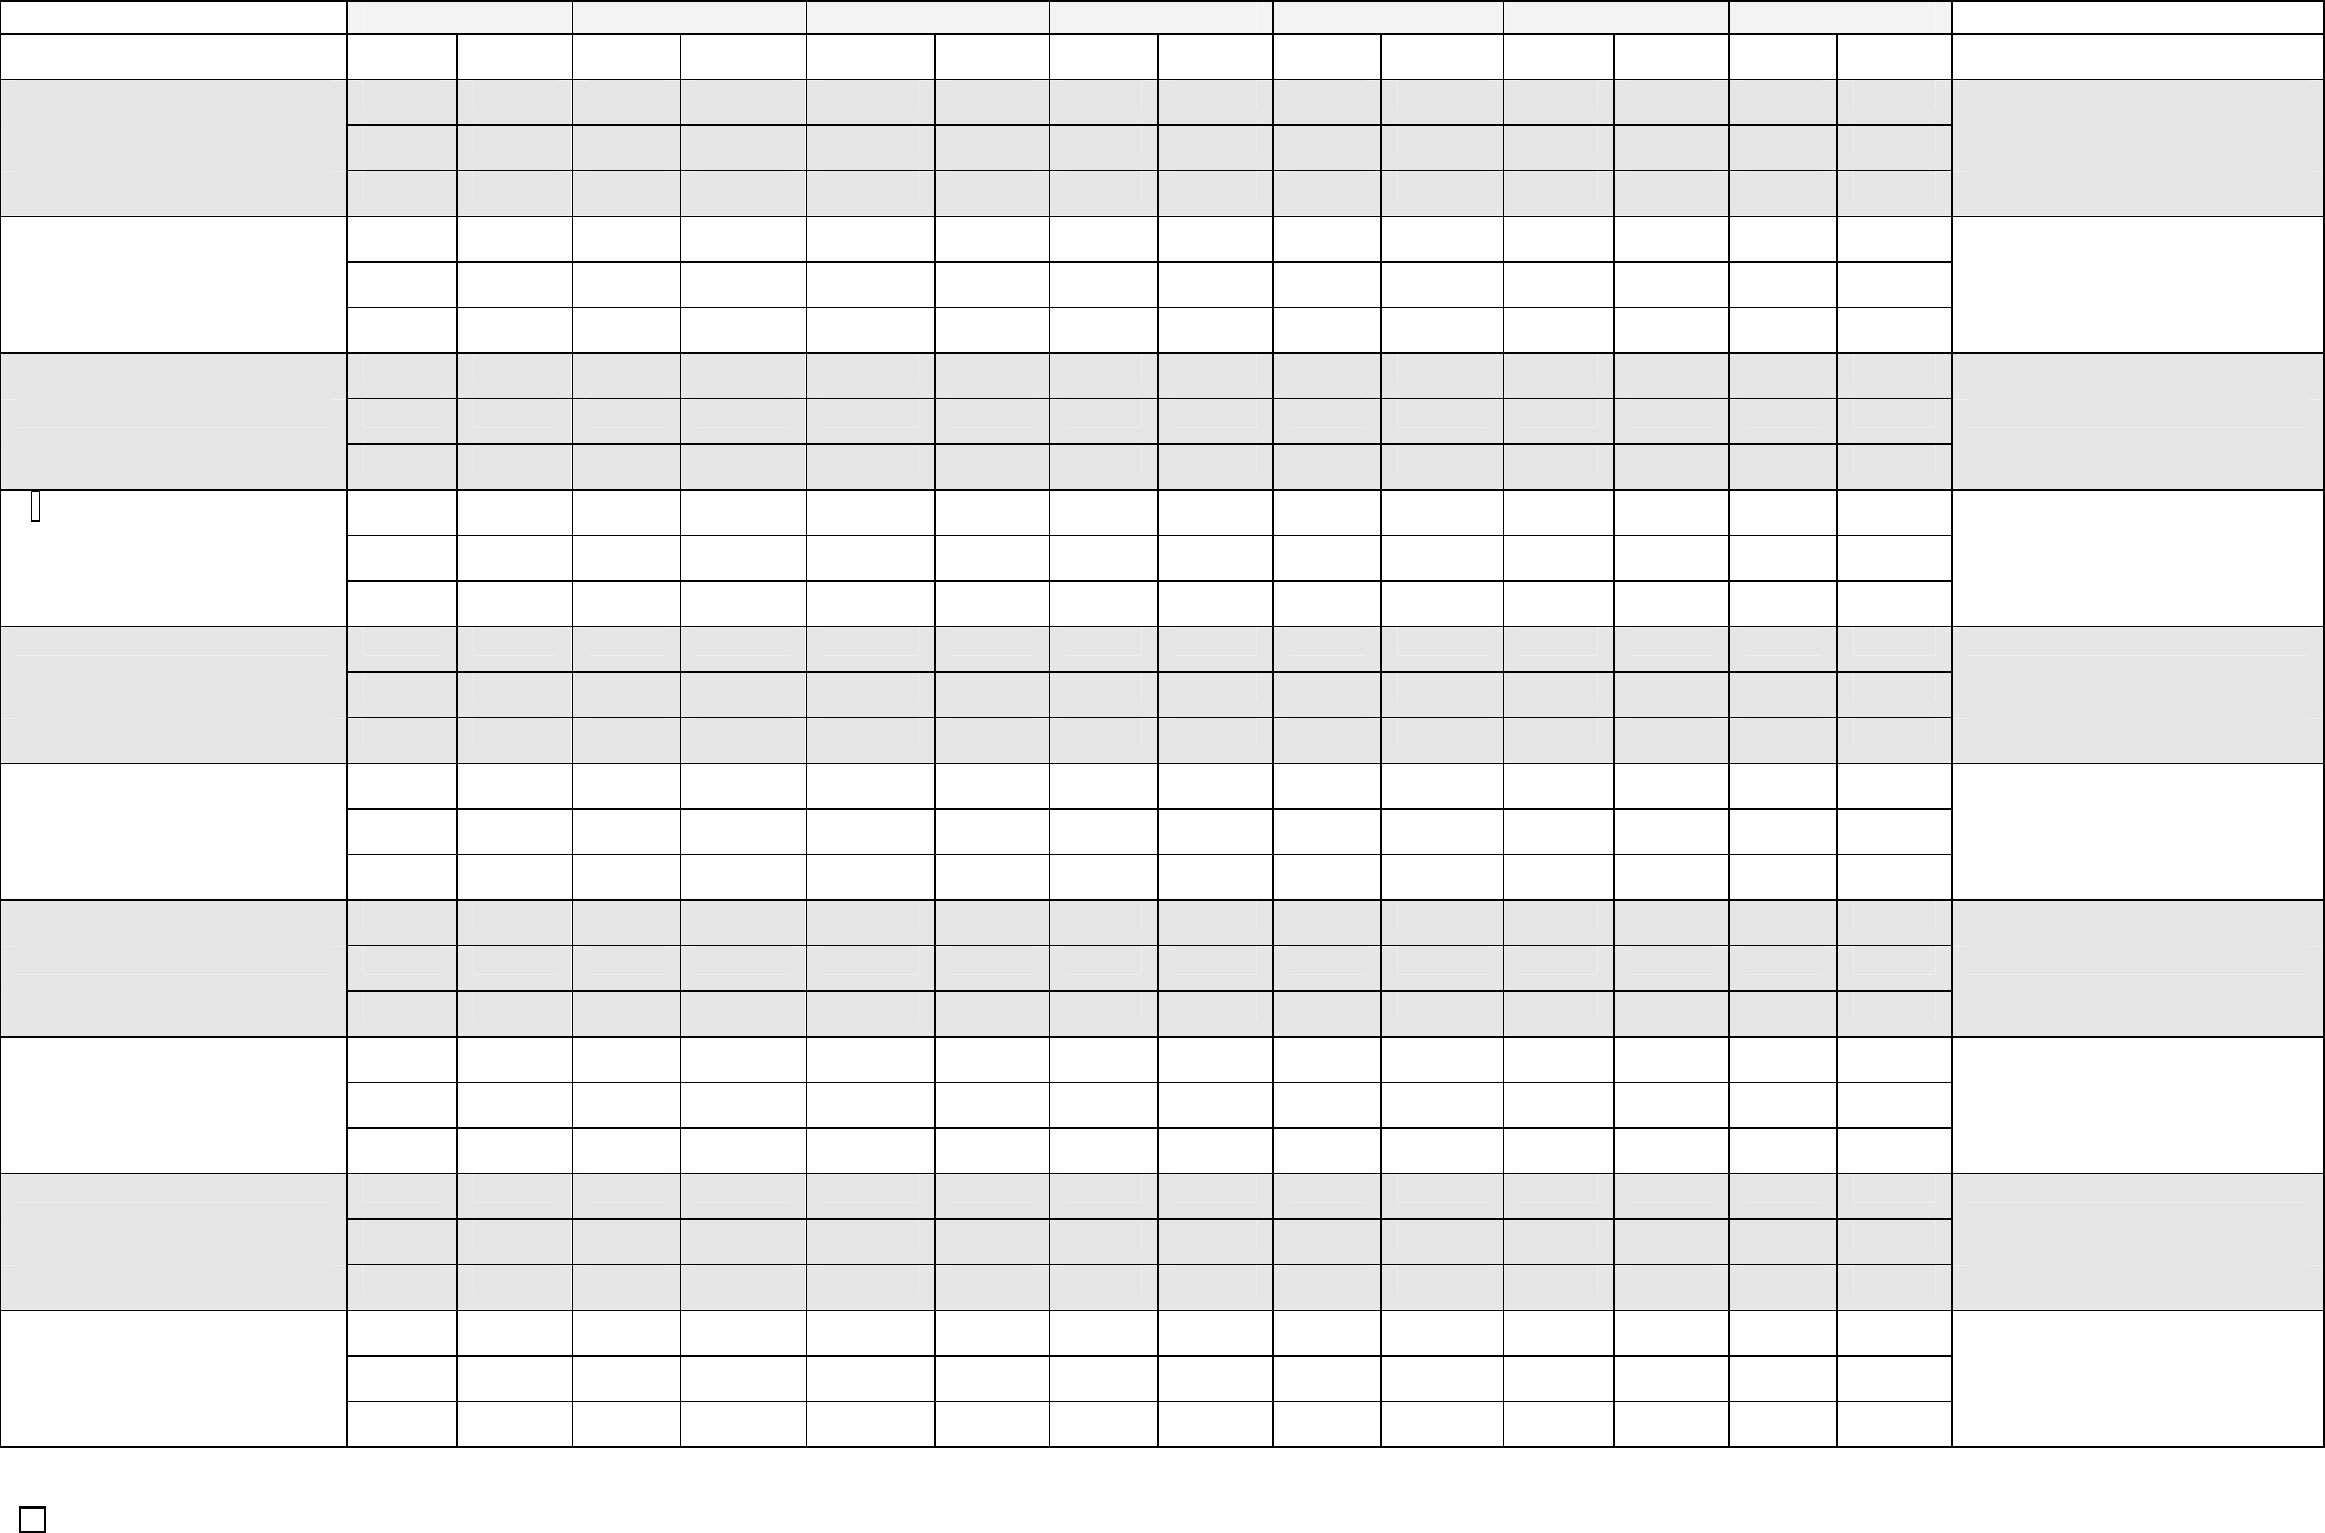 Children Weekly Attendance Sheet  Downloadable Attendance Sheet